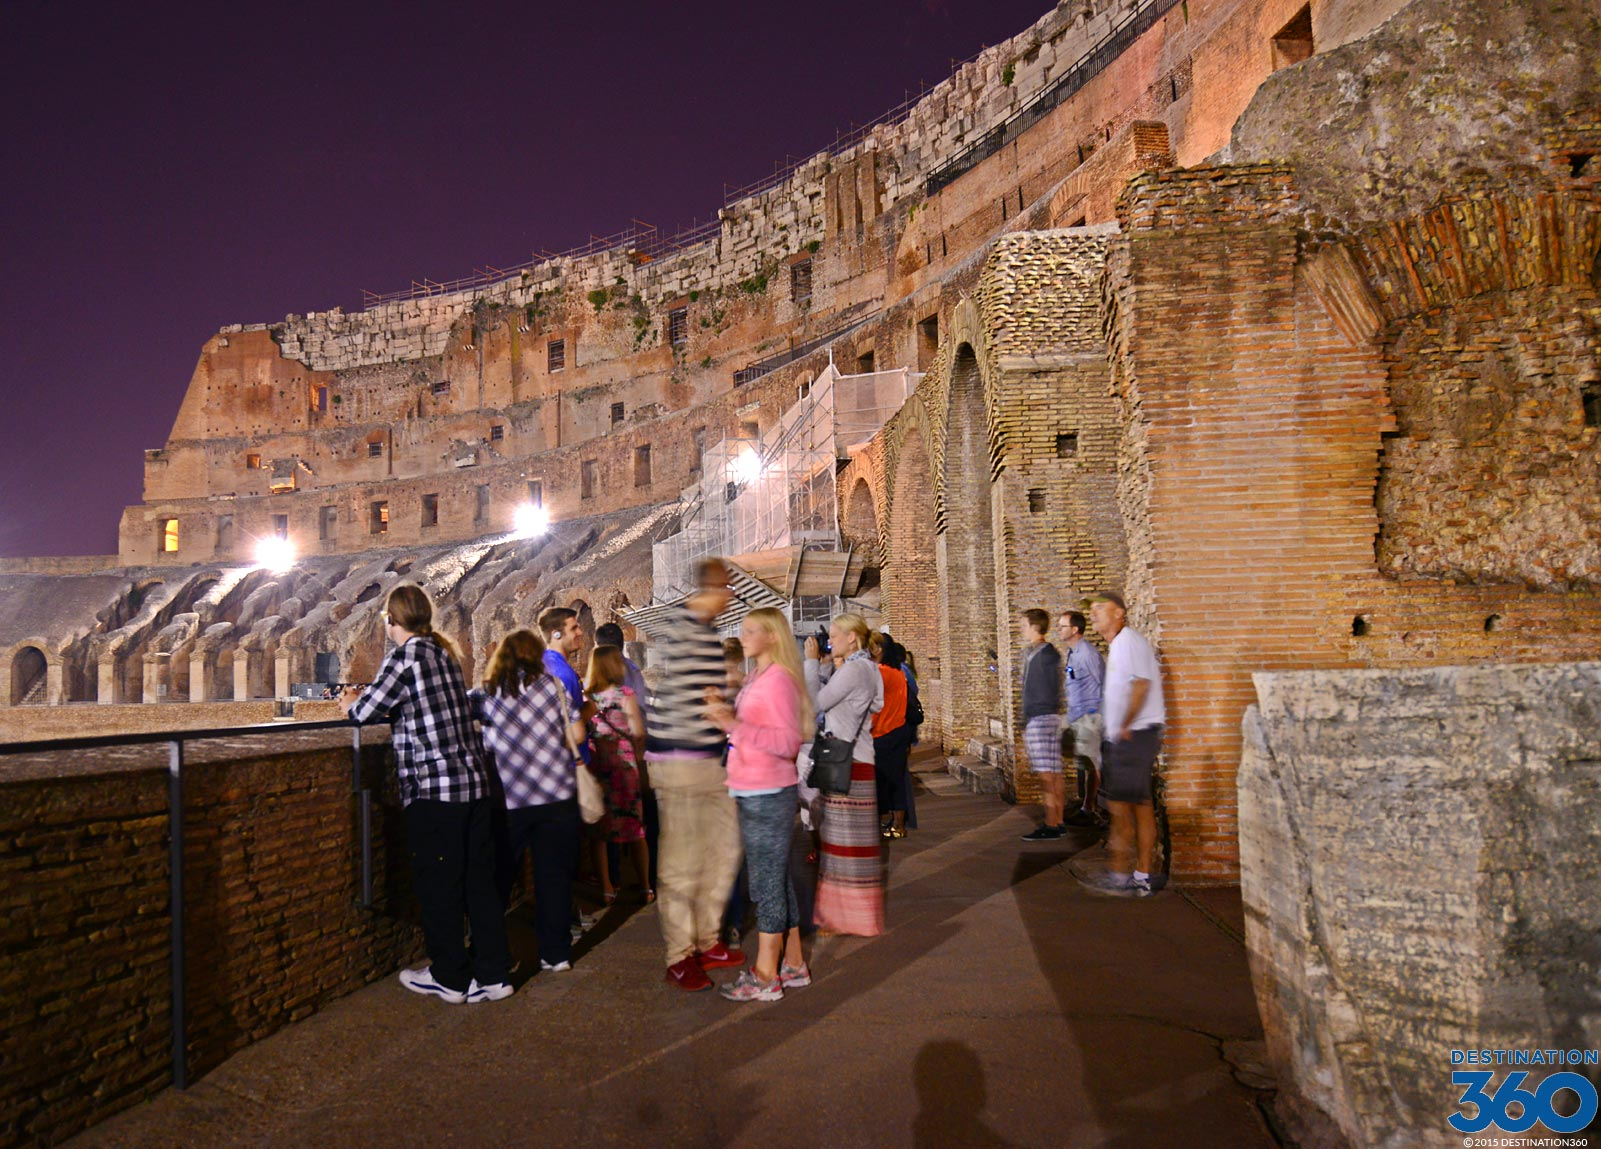 Tours of the Colosseum Virtual Tour